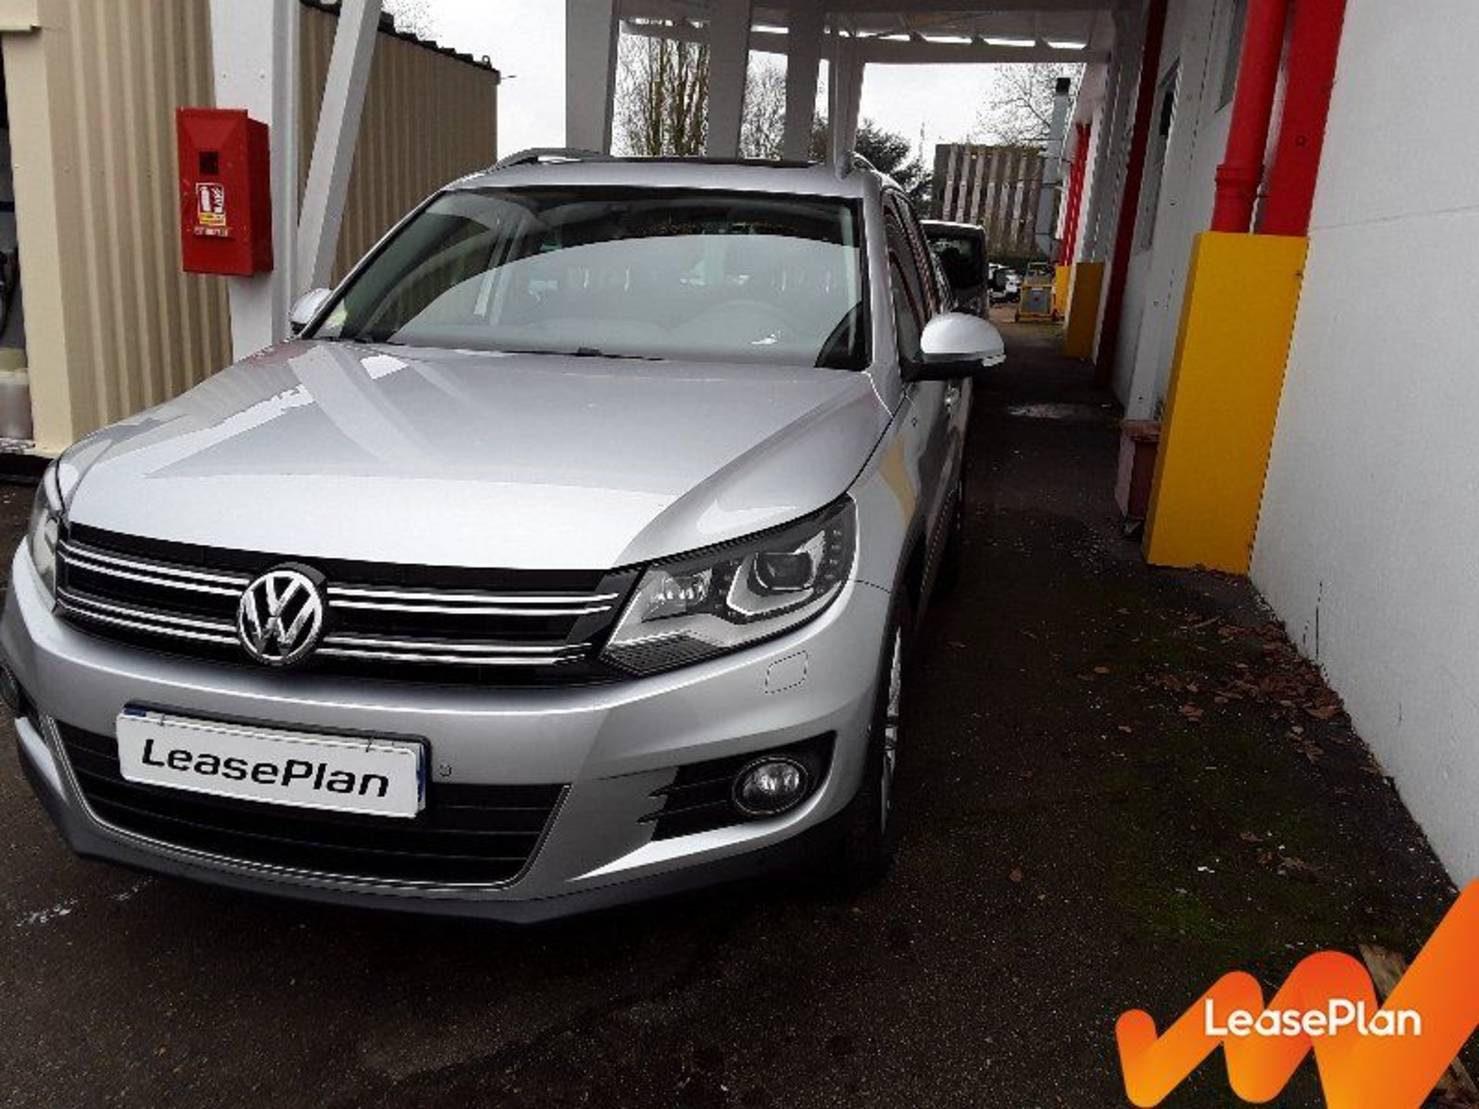 Volkswagen Tiguan 2.0 TDI 140 FAP BlueMotion Technology, Cup detail2